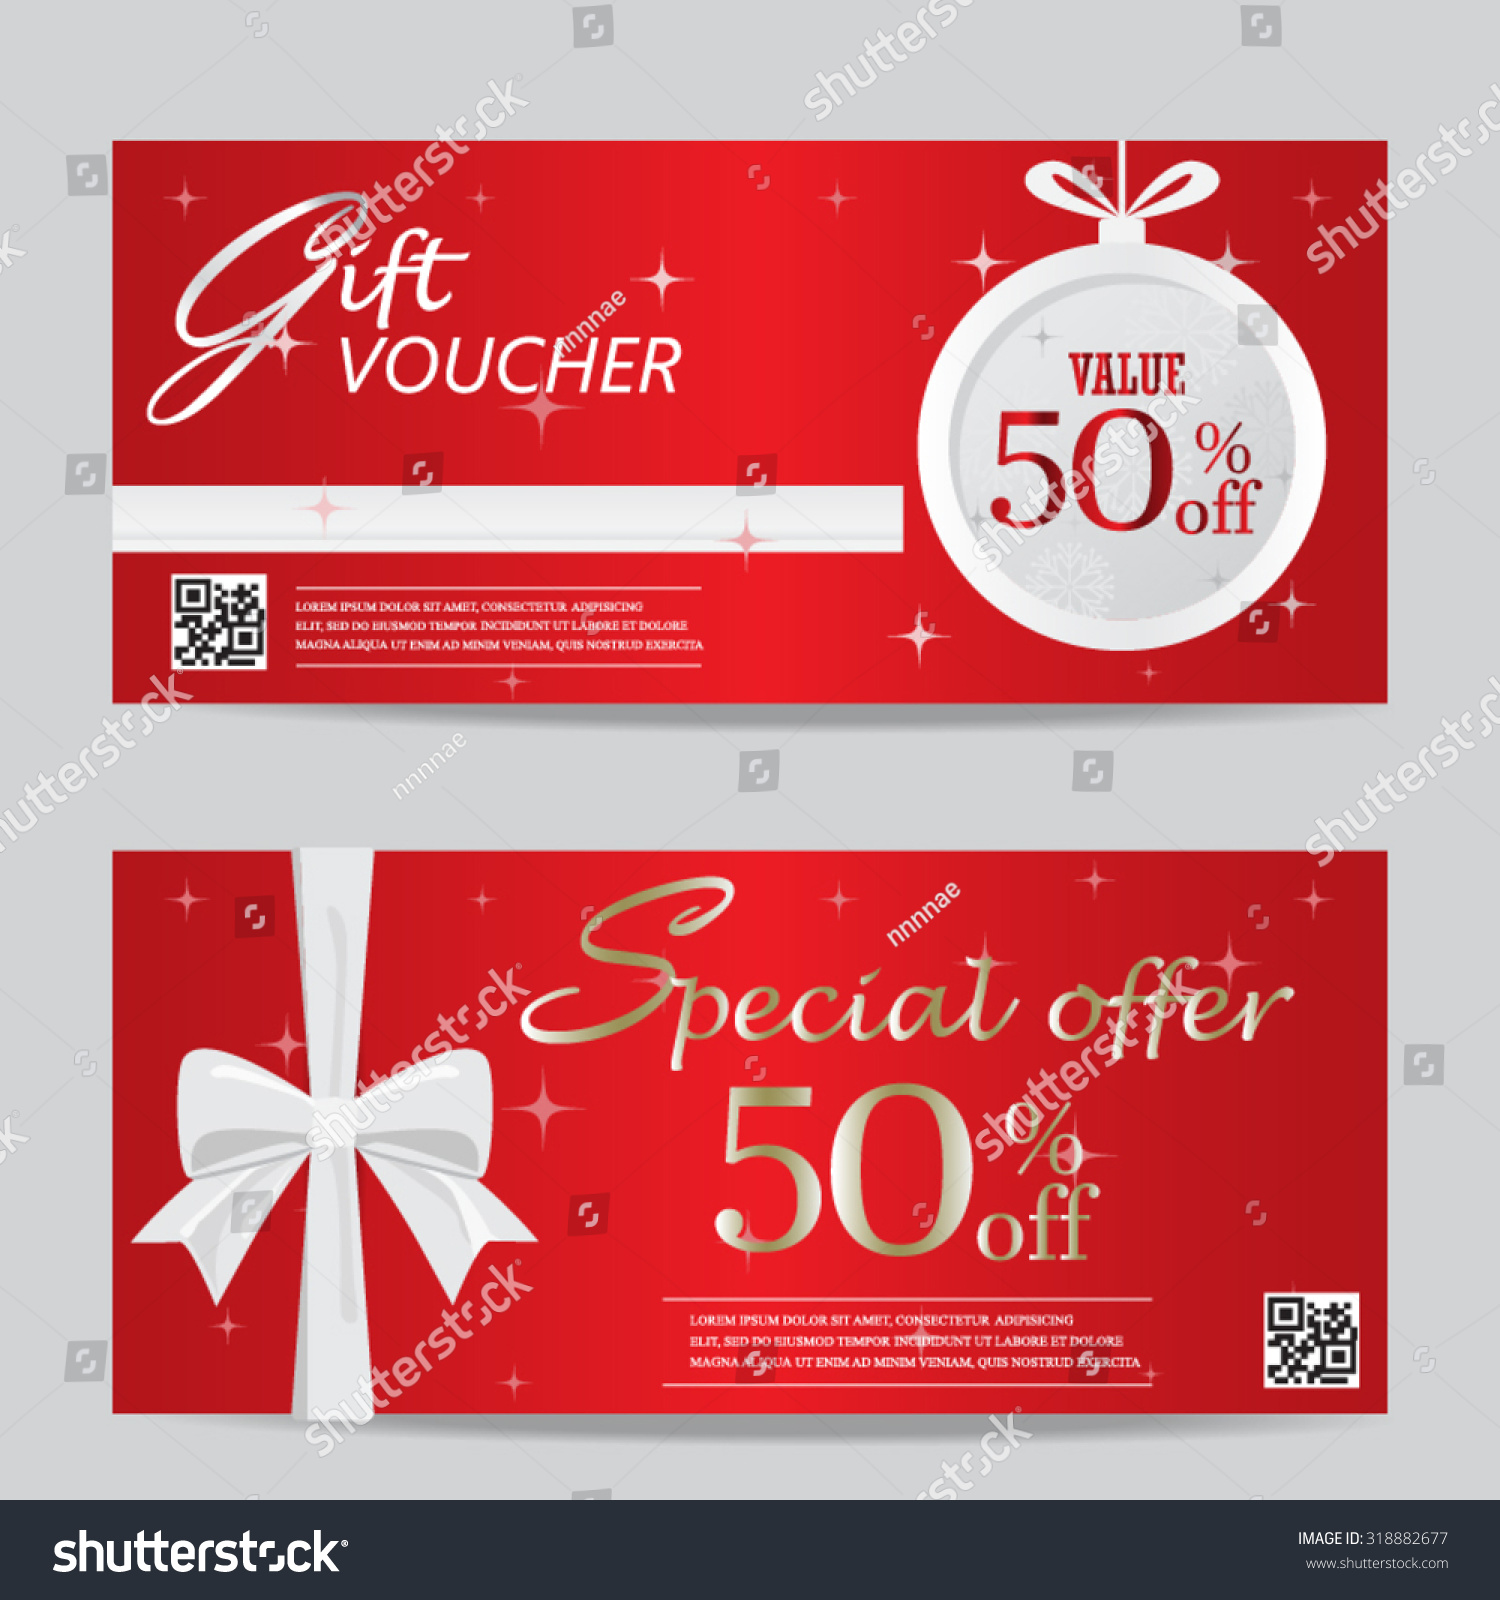 red christmas new year gift voucher stock vector  red christmas and new year gift voucher certificate coupon template can be use for business